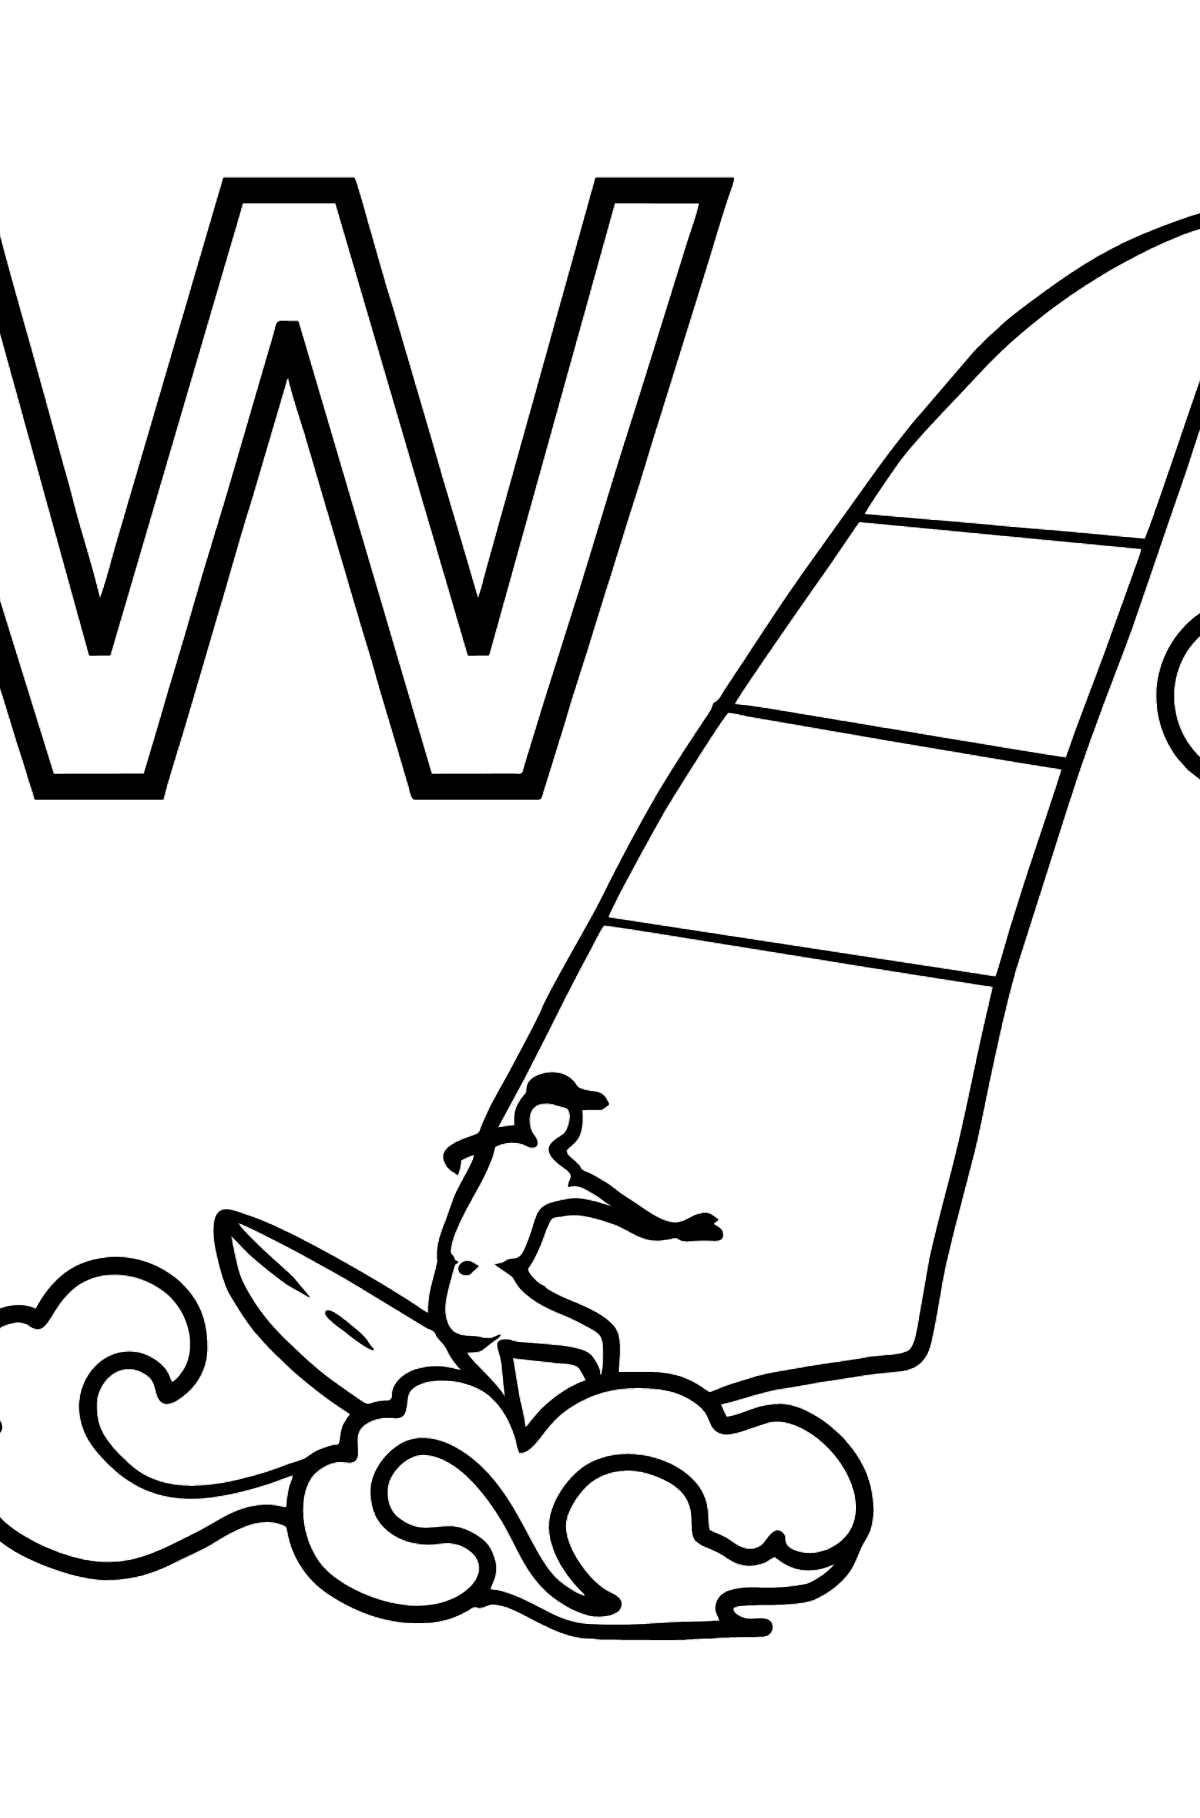 Spanish Letter W coloring pages - WINDSURF - Coloring Pages for Kids